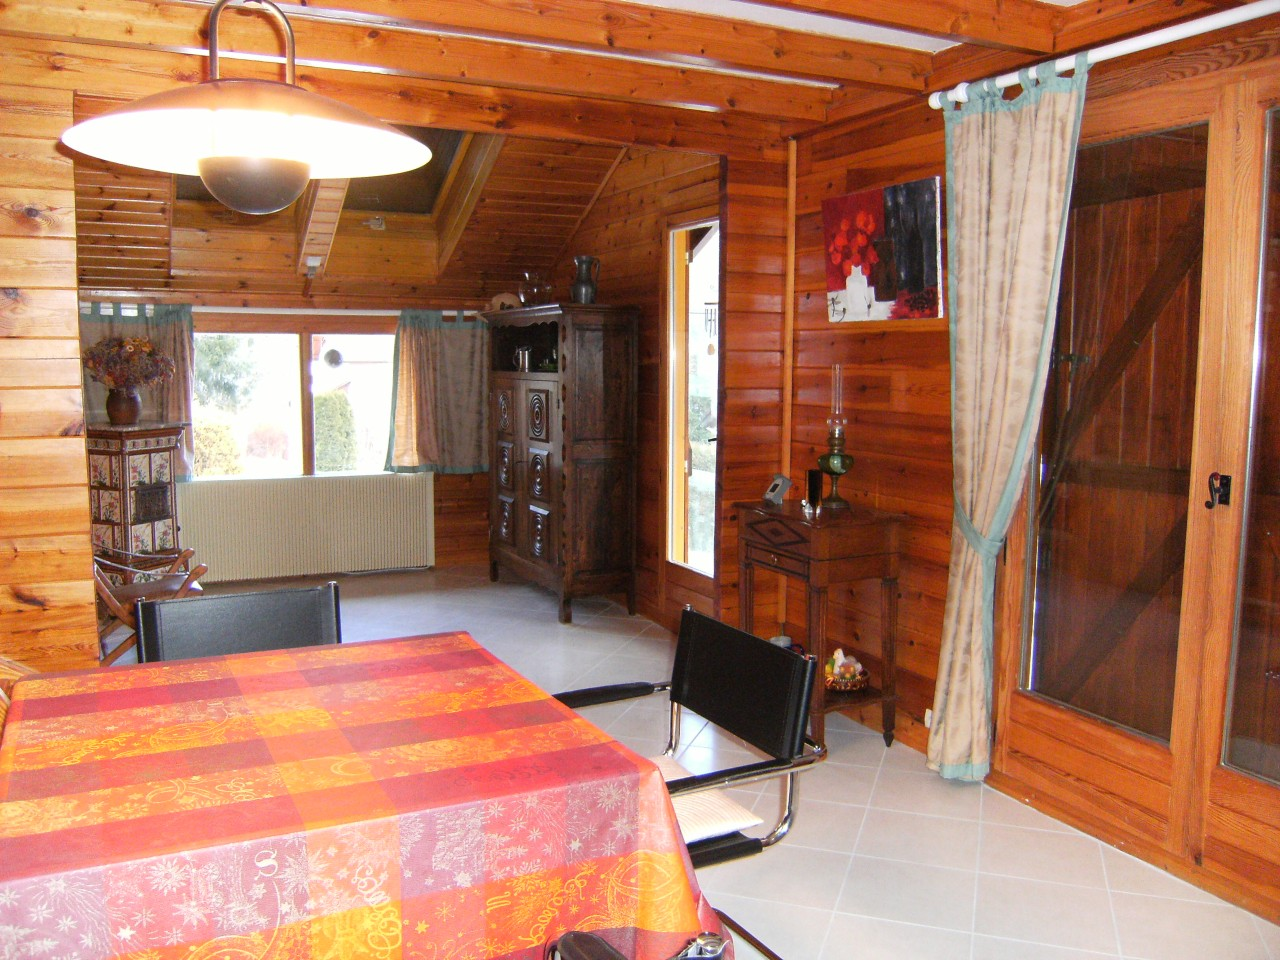 Agence immobili re g rardmer annonce chalets n 2258 for Agence immobiliere gerardmer